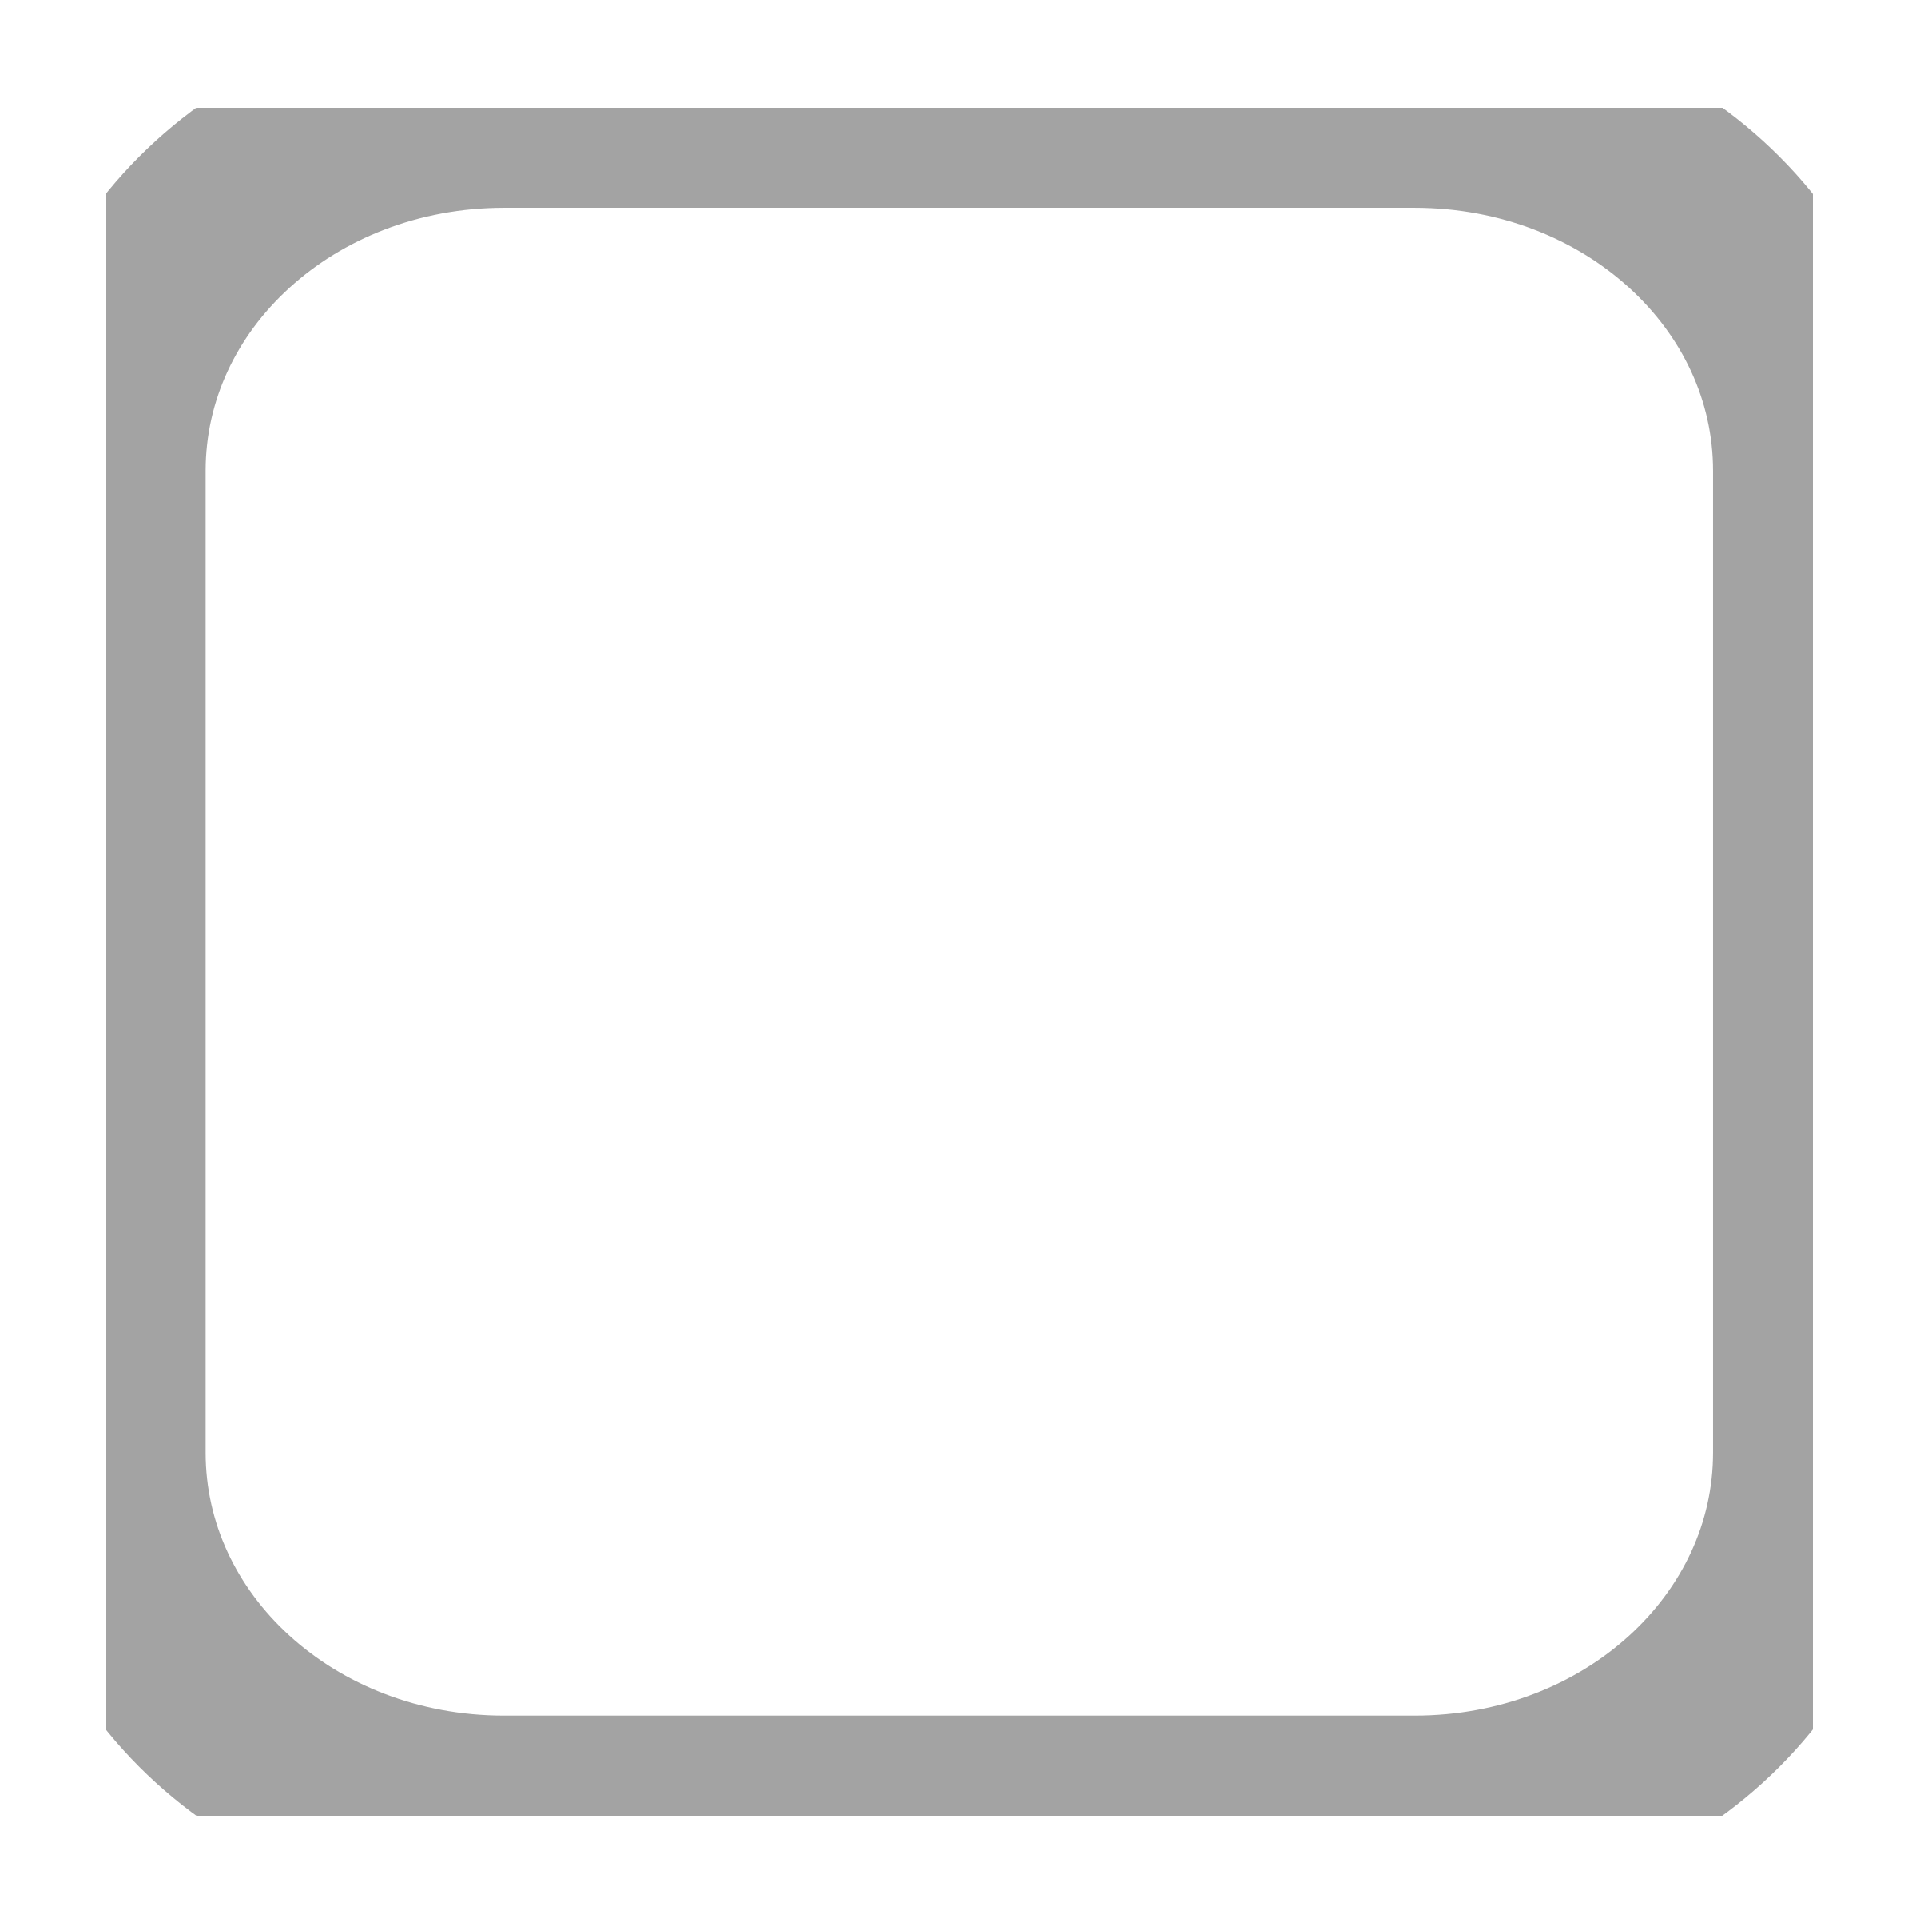 Square clipart plain. Checkbox unchecked disabled big